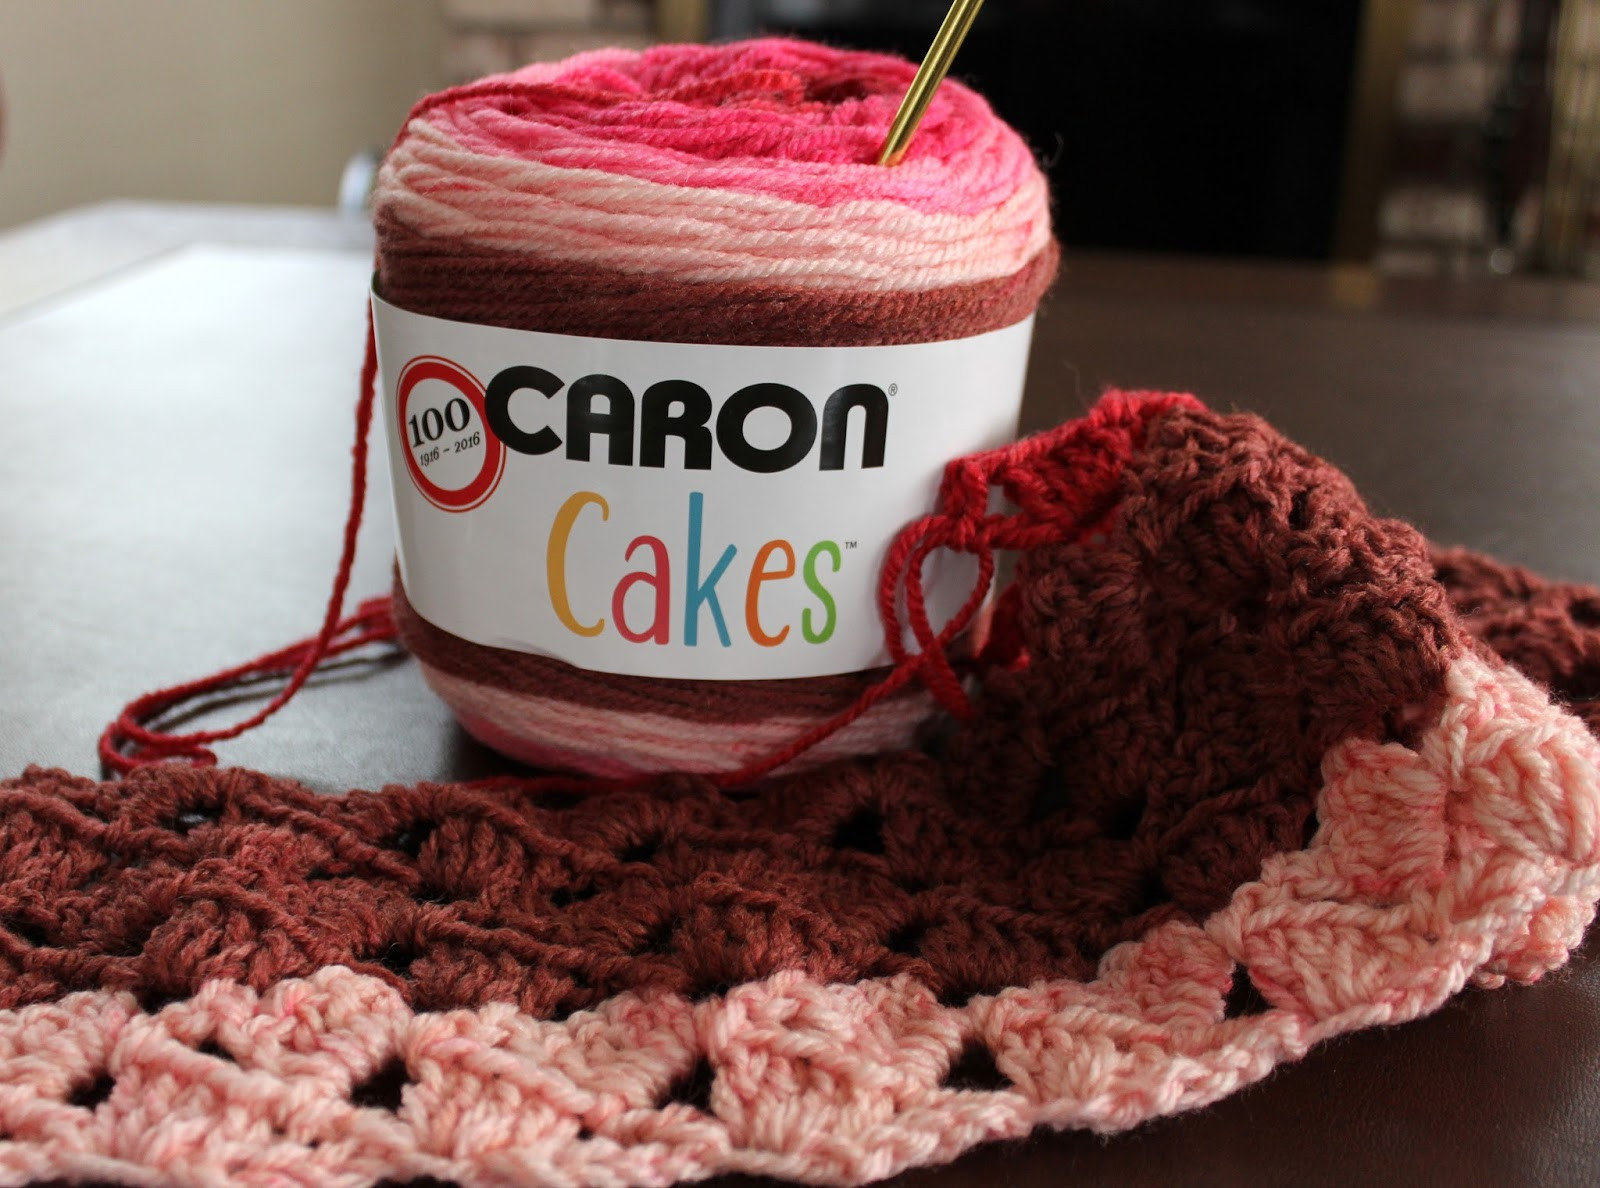 Best Of Lacy Crochet My First Caron Cakes In Cherry Chip Yarn Review Caron Cakes Colors Of Delightful 42 Pics Caron Cakes Colors